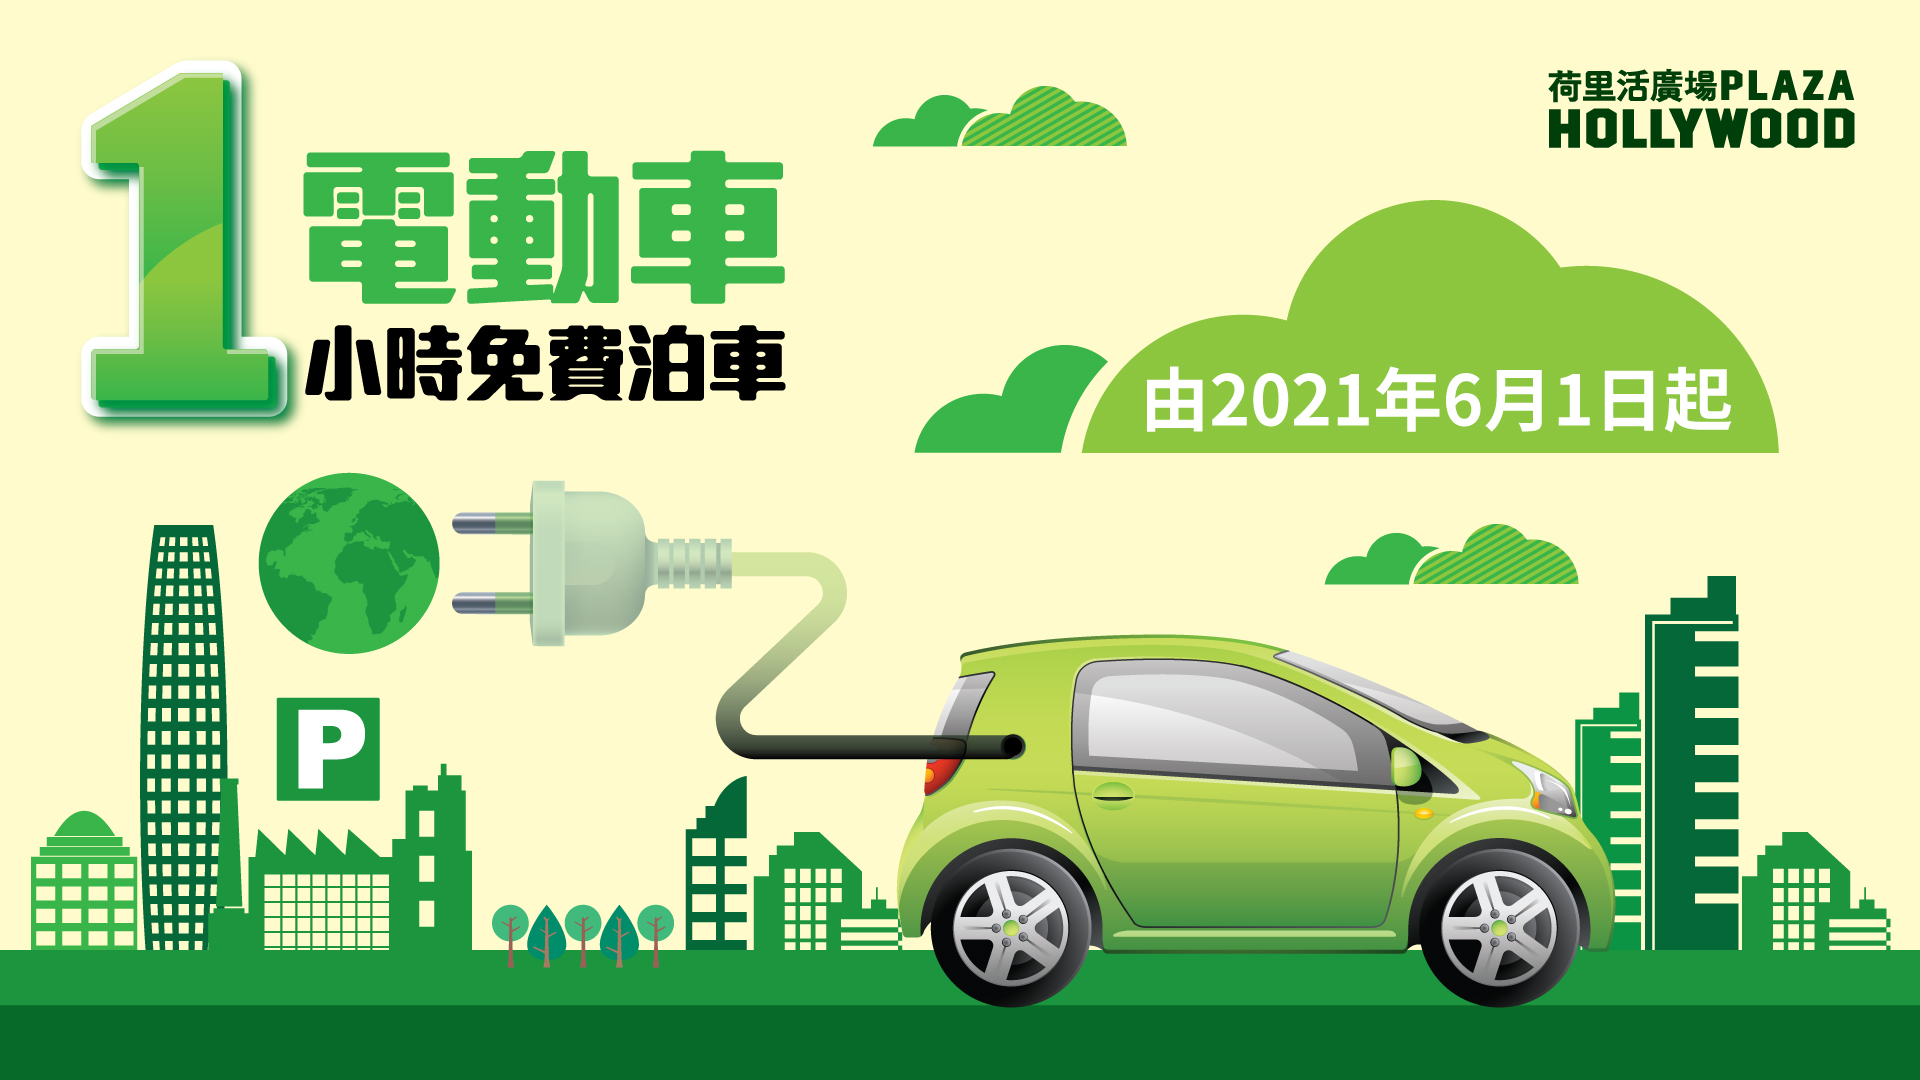 Electric Vehicle 1 hour Parking Privilege & Charging Service